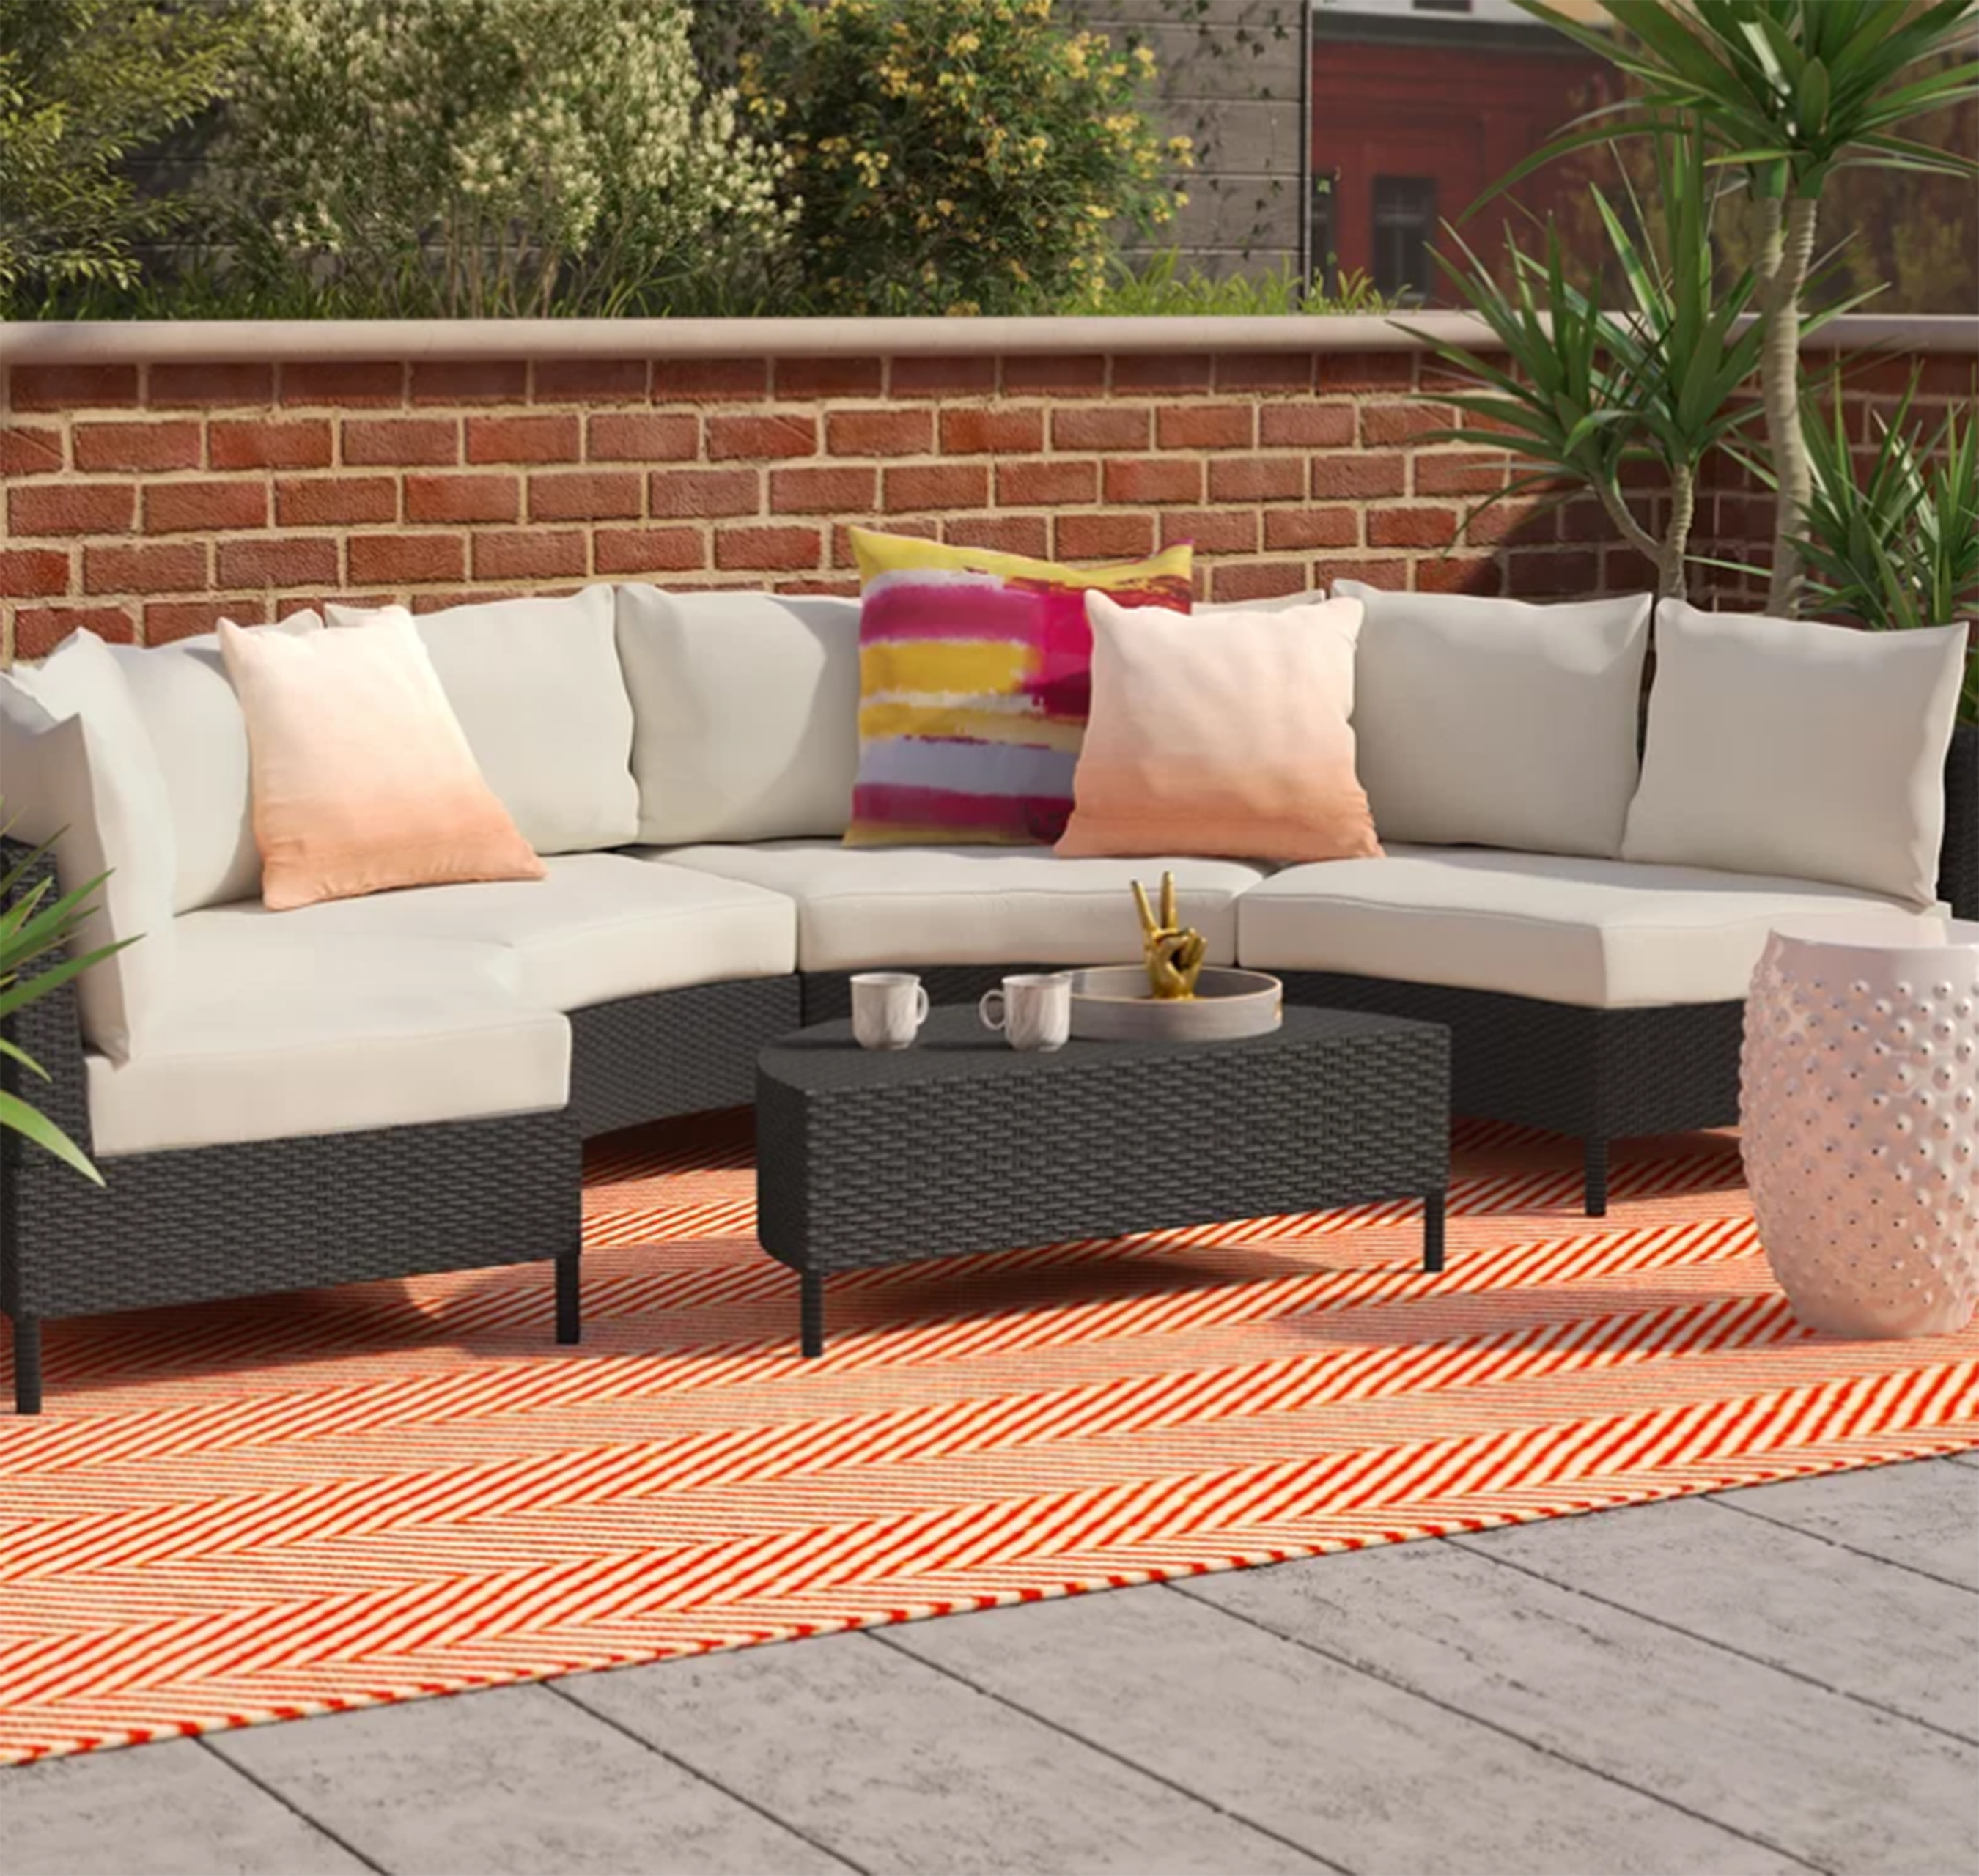 [%Hot Deal! 51% Off Hewson Outdoor Patio Acacia Wood Coffee Table Inside Most Current Hursey Patio Sofas|Hursey Patio Sofas In Most Popular Hot Deal! 51% Off Hewson Outdoor Patio Acacia Wood Coffee Table|Most Up To Date Hursey Patio Sofas With Hot Deal! 51% Off Hewson Outdoor Patio Acacia Wood Coffee Table|Most Recently Released Hot Deal! 51% Off Hewson Outdoor Patio Acacia Wood Coffee Table Pertaining To Hursey Patio Sofas%] (View 19 of 20)